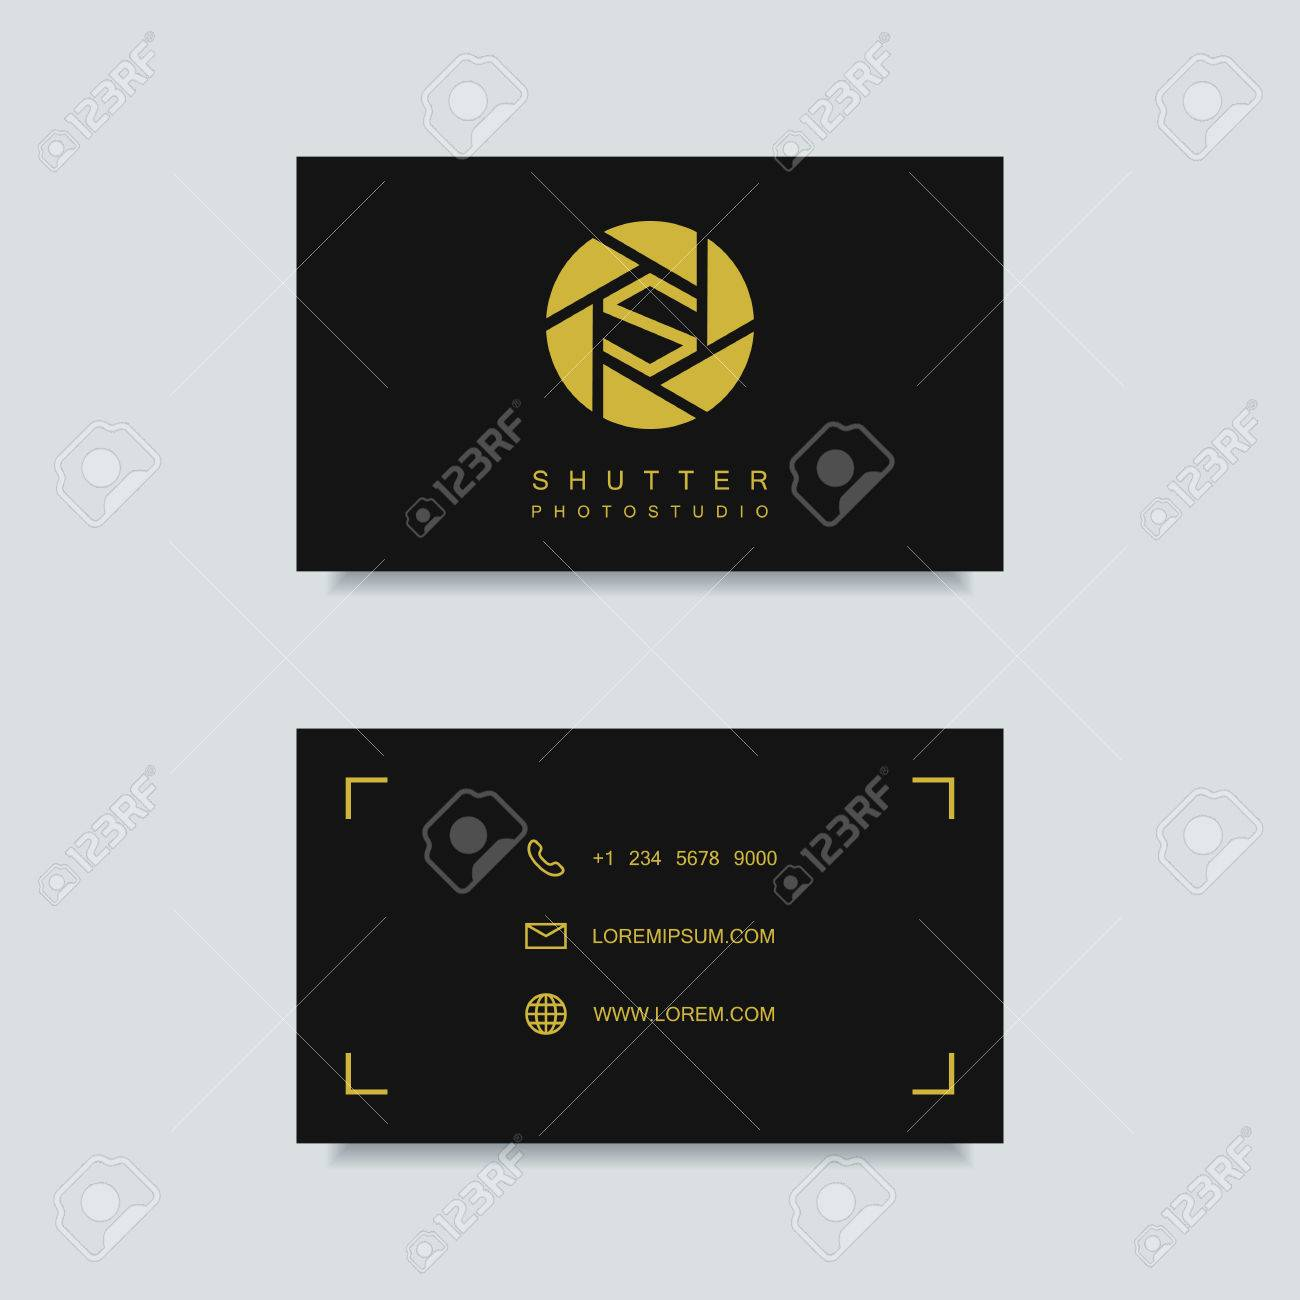 Photography Business Card Template Photography Emblem Photo - Photography business card template